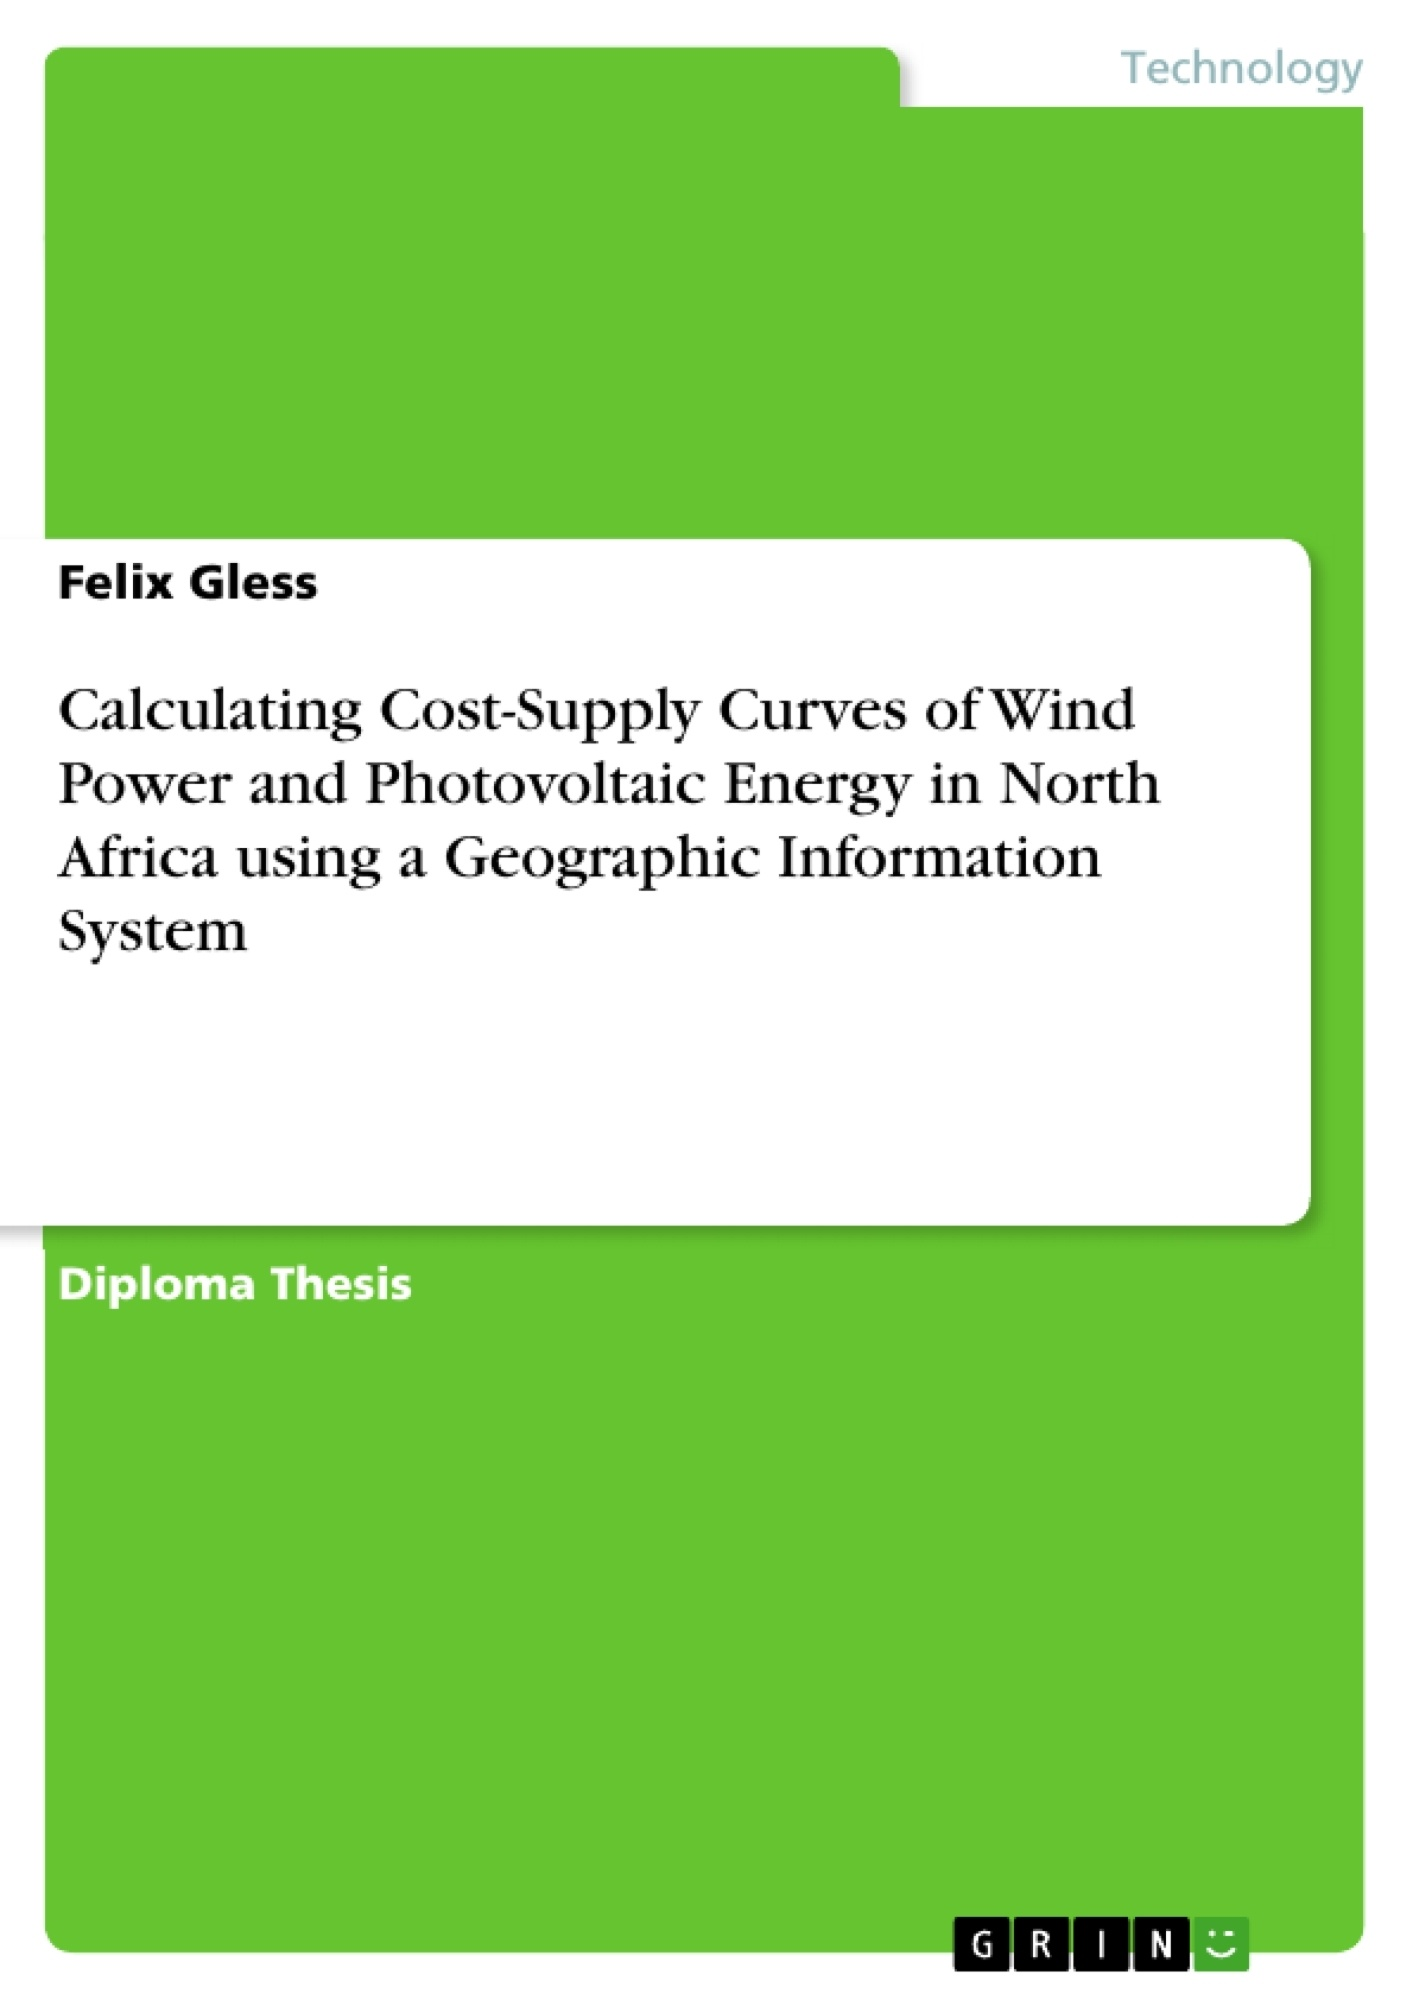 Title: Calculating Cost-Supply Curves of Wind Power and Photovoltaic Energy in North Africa using a Geographic Information System